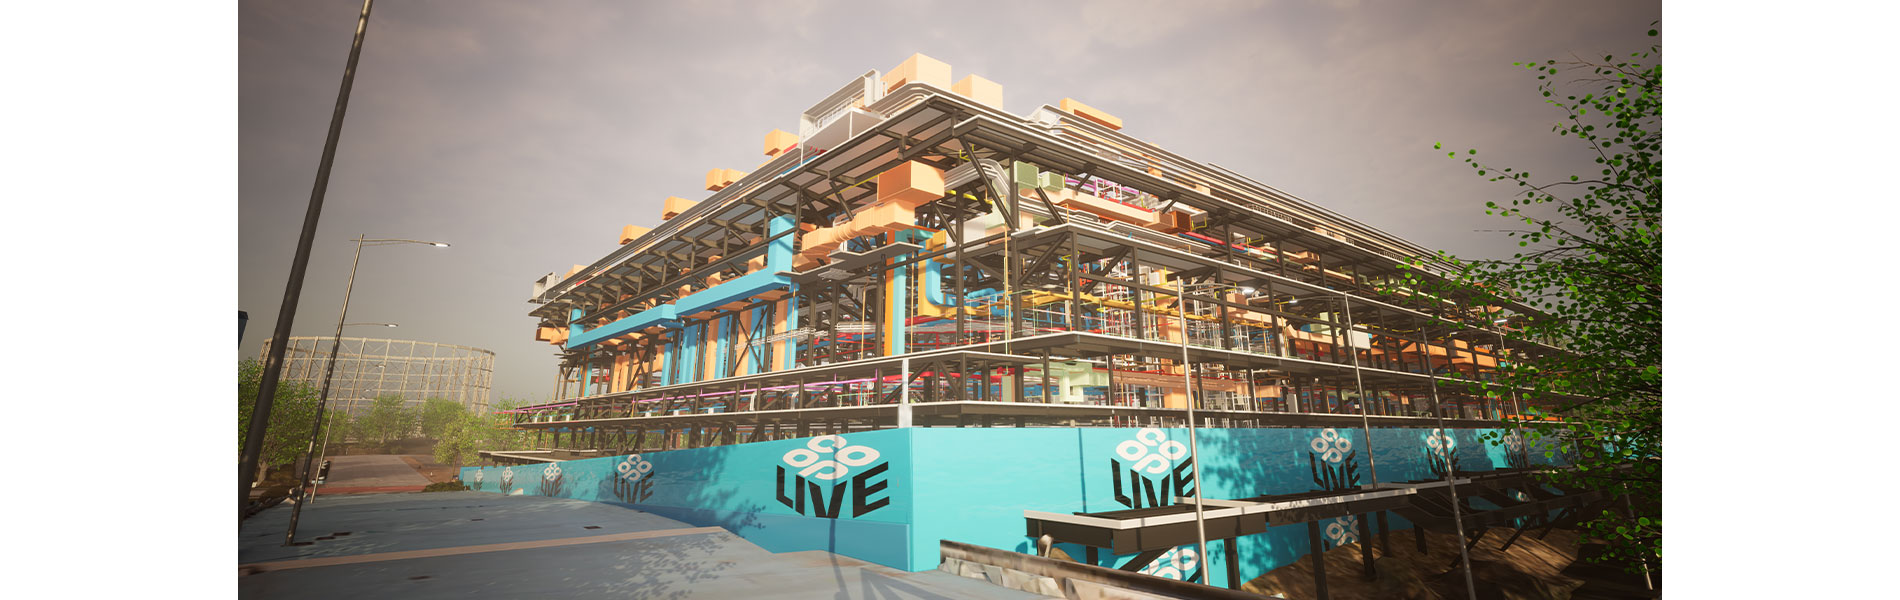 SES Engineering Services secures multi-million-pound MEPH package at Manchester's Co-op Live Arena